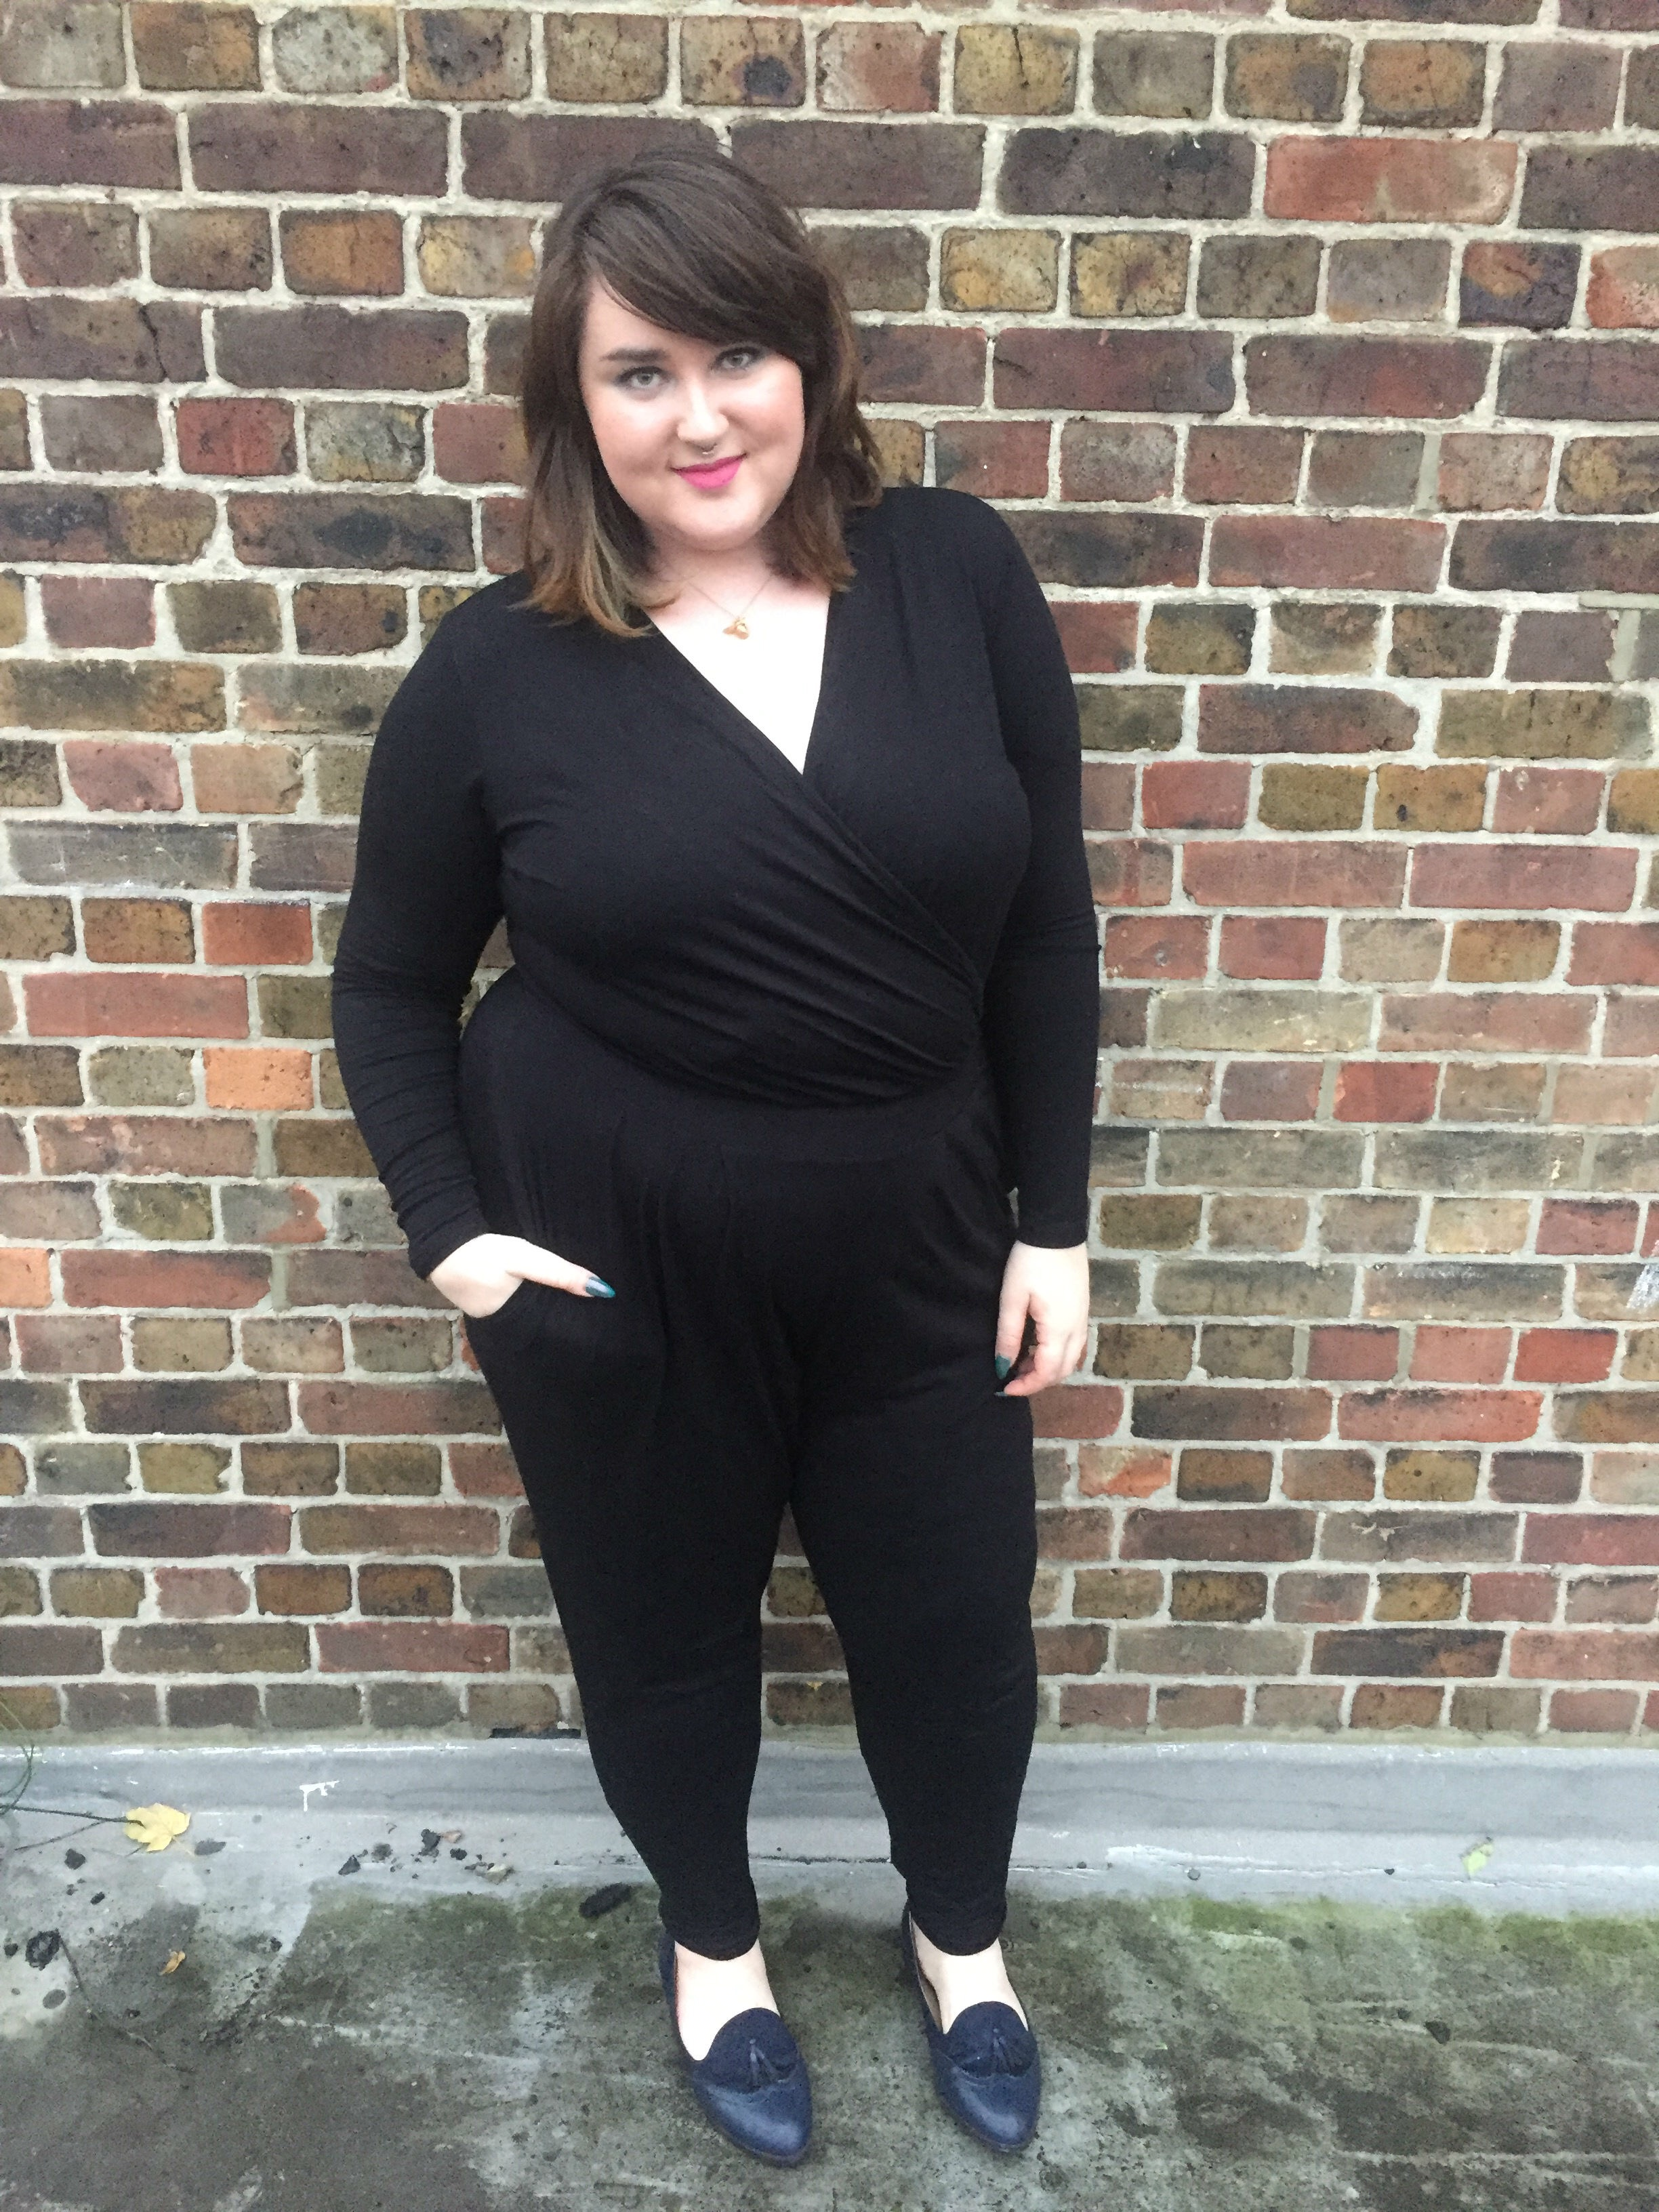 bethany_rutter_archedeyebrow_best_dressed